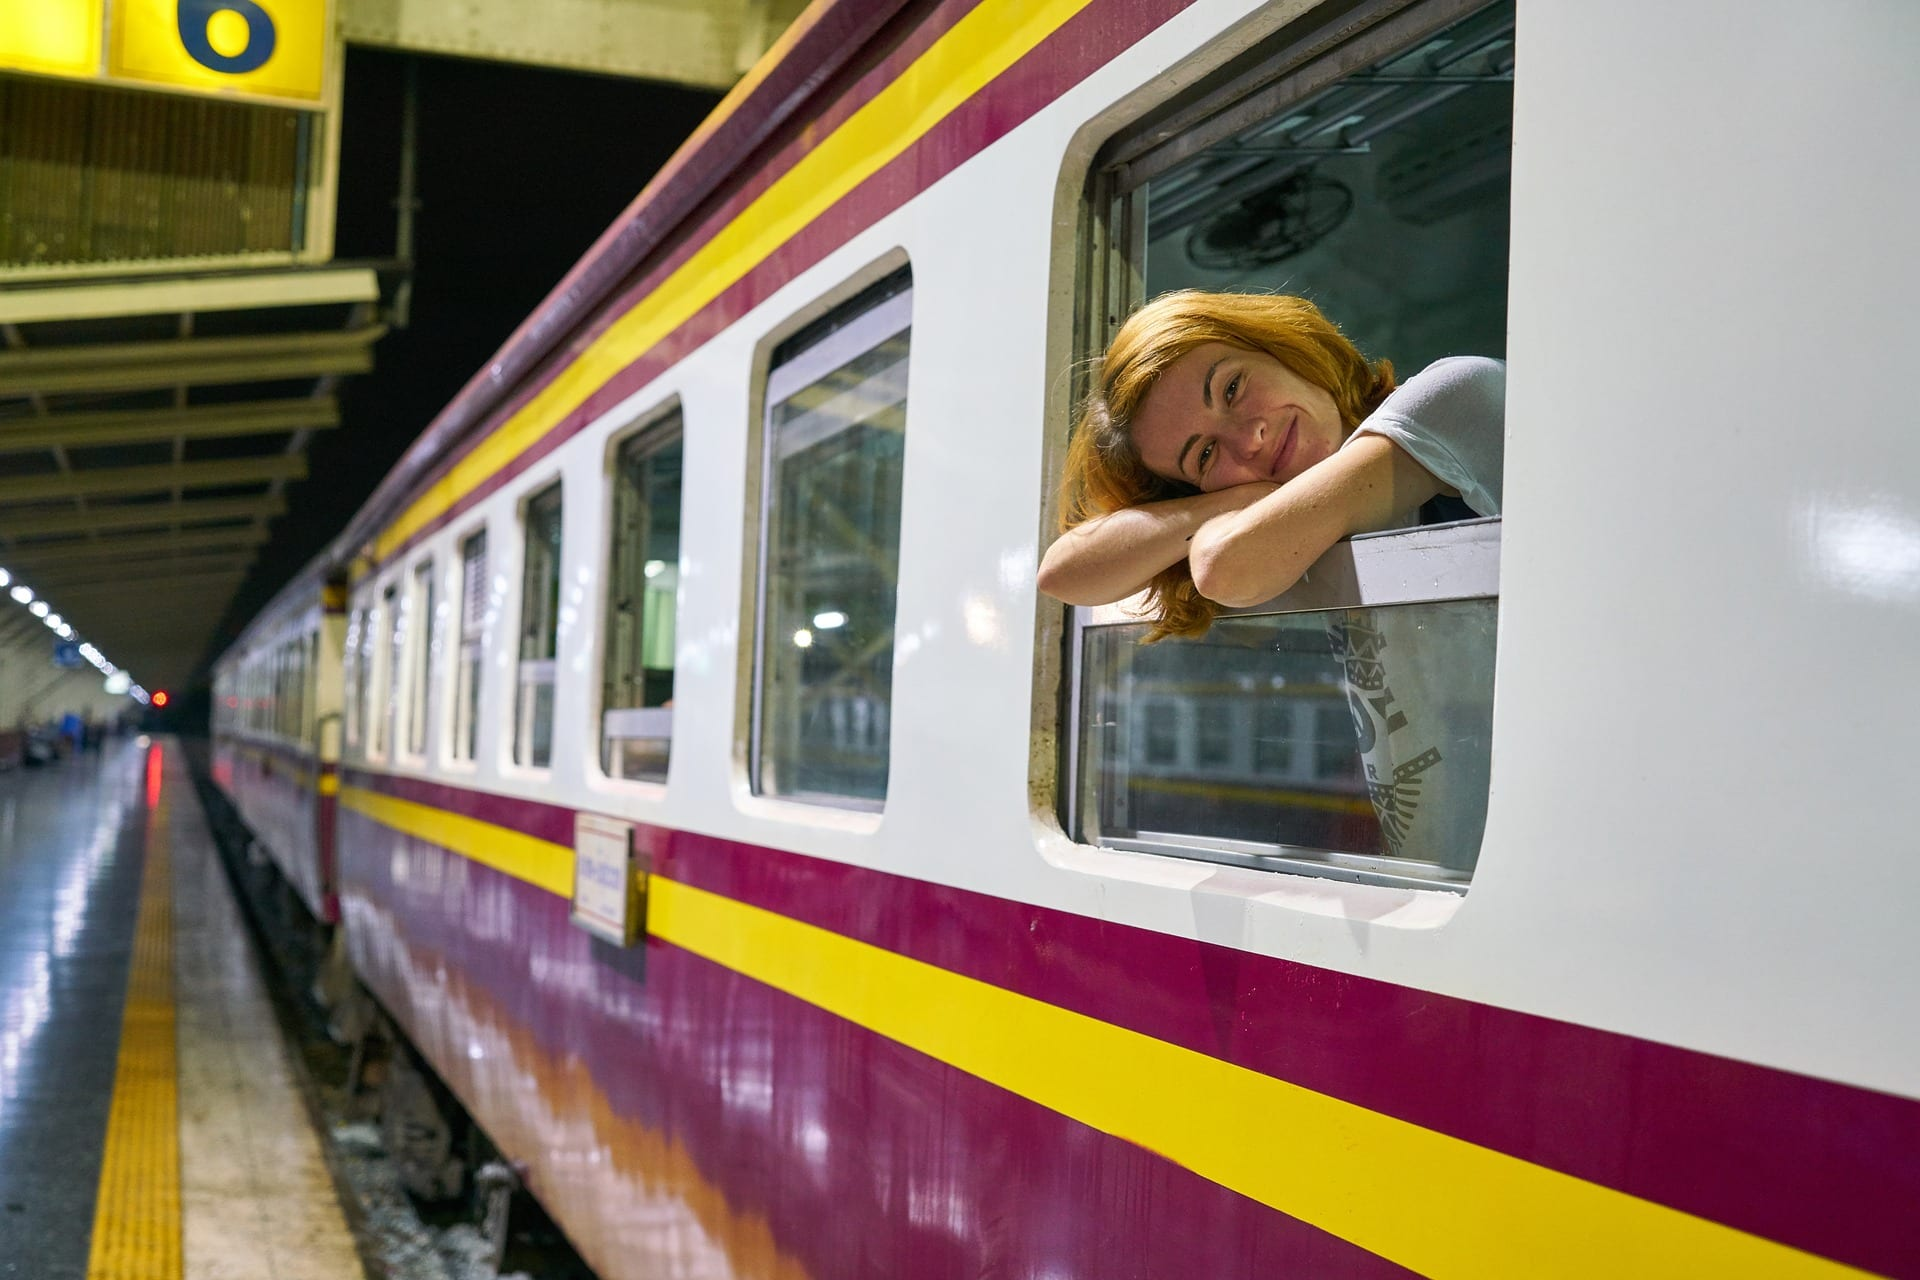 What are the important things to carry while travelling in Train?